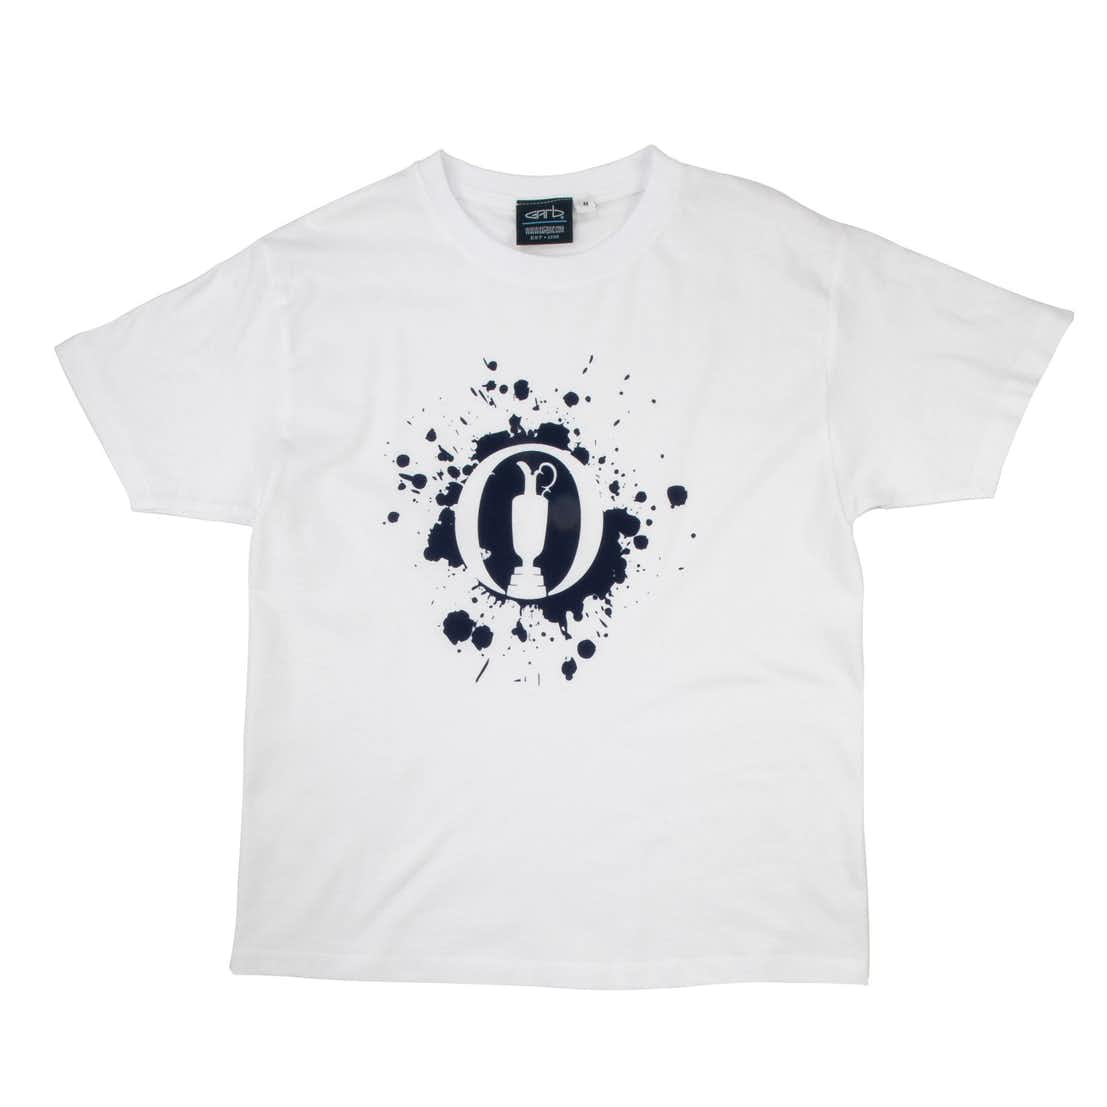 The Open Children's T-Shirt - White